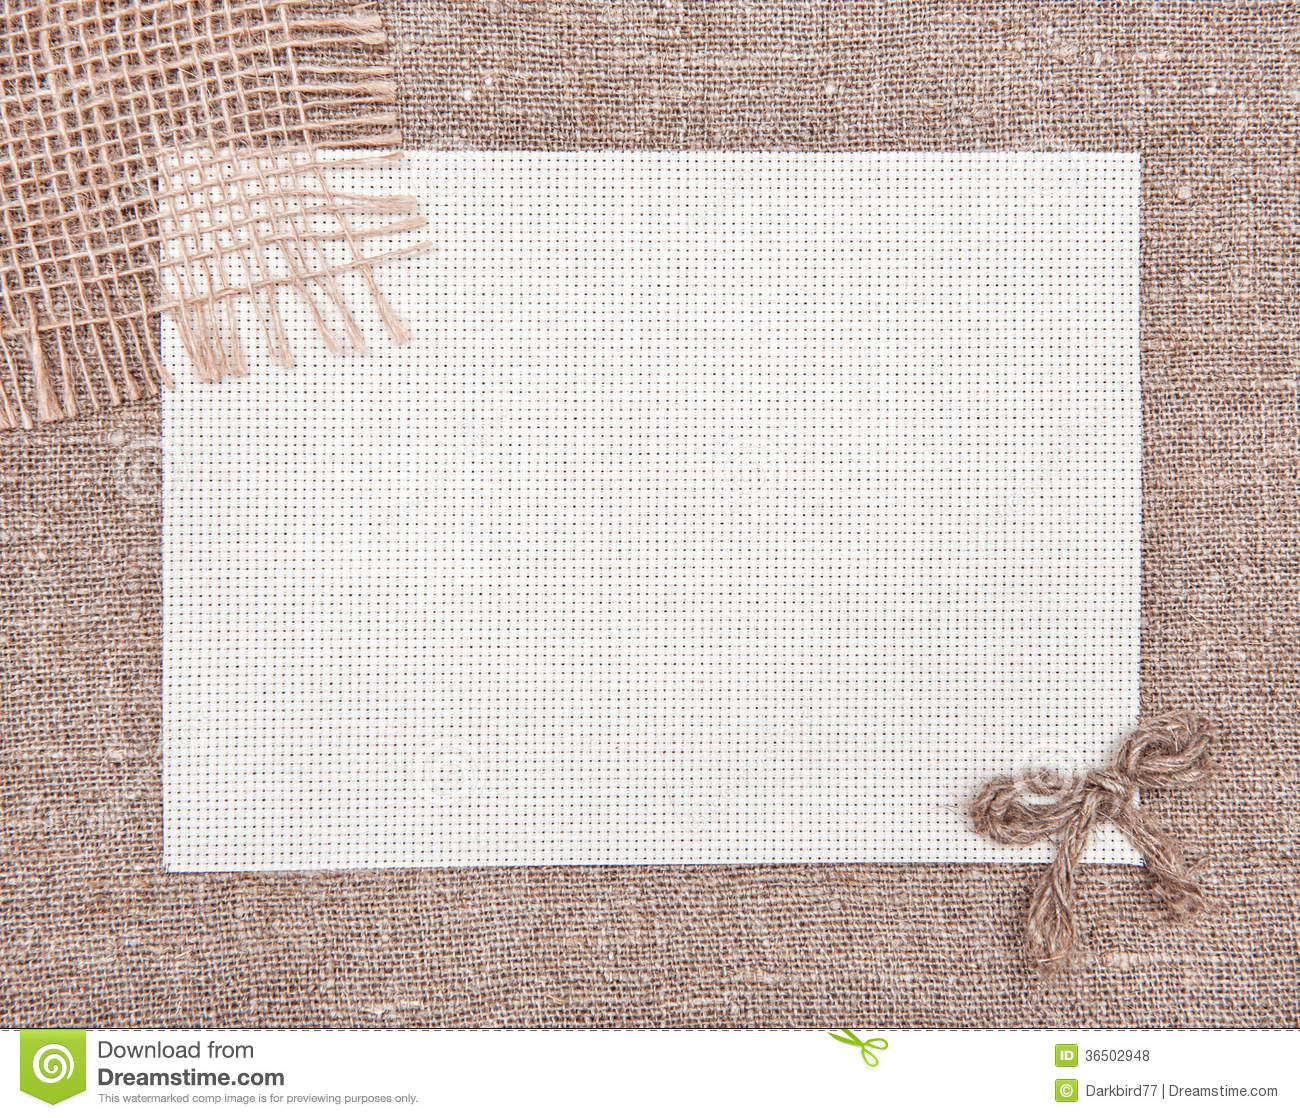 Shabby Wedding Invitations is good invitations layout